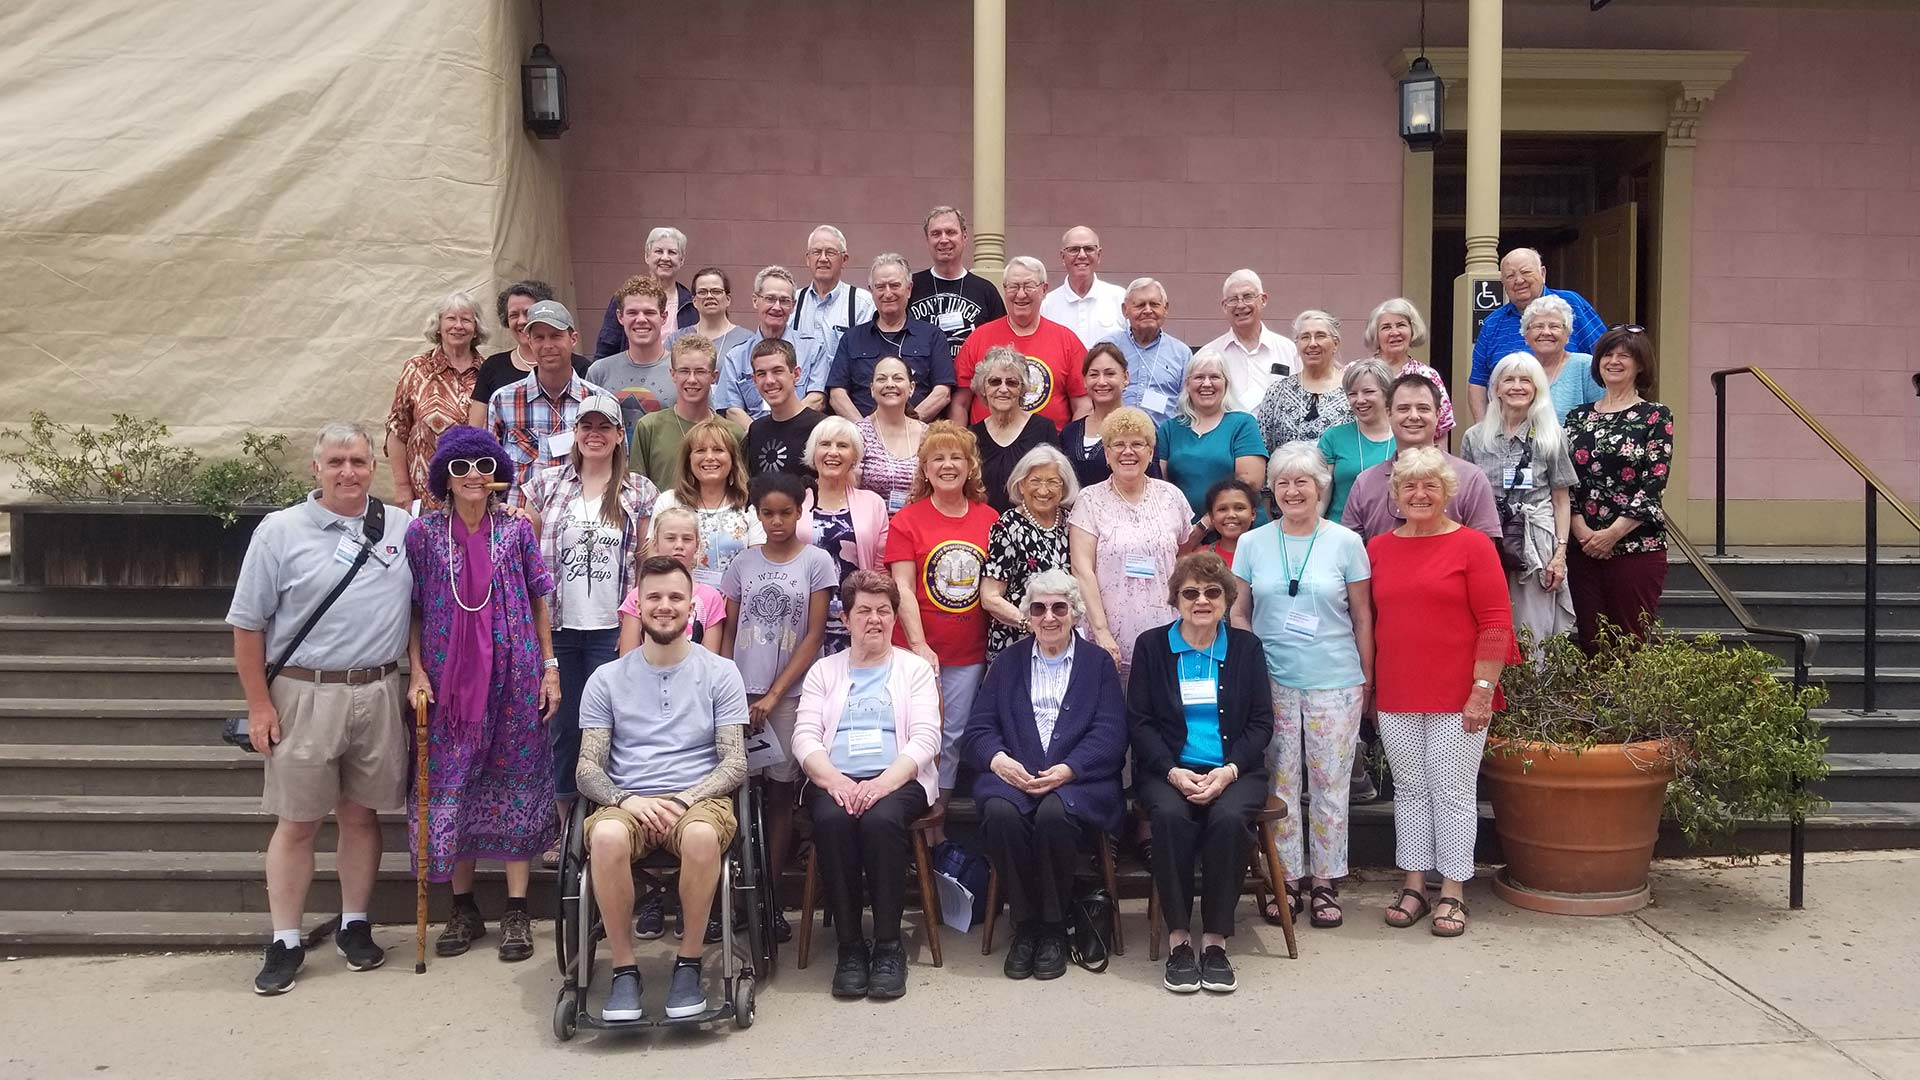 Seeley Genealogical Society members at the 2019 reunion in San Diego, CA